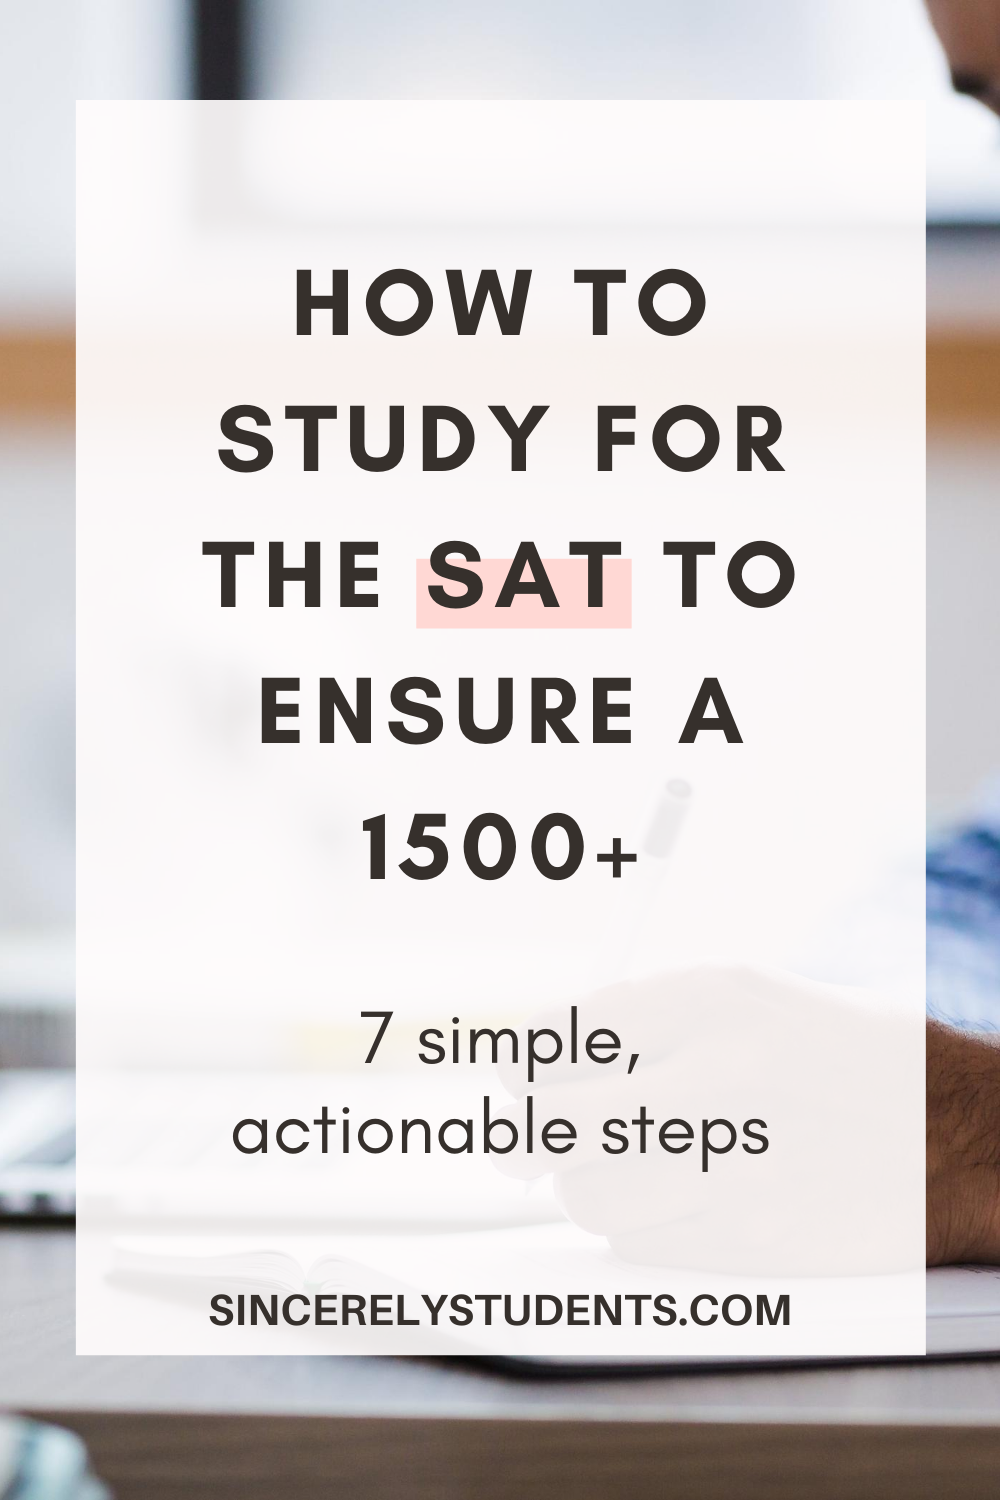 How To Study For The Sat To Ensure A 1500 7 Simple Steps Towards A Great Sat Score Study Tips Study Tips For Students Study Tips Best Study Tips